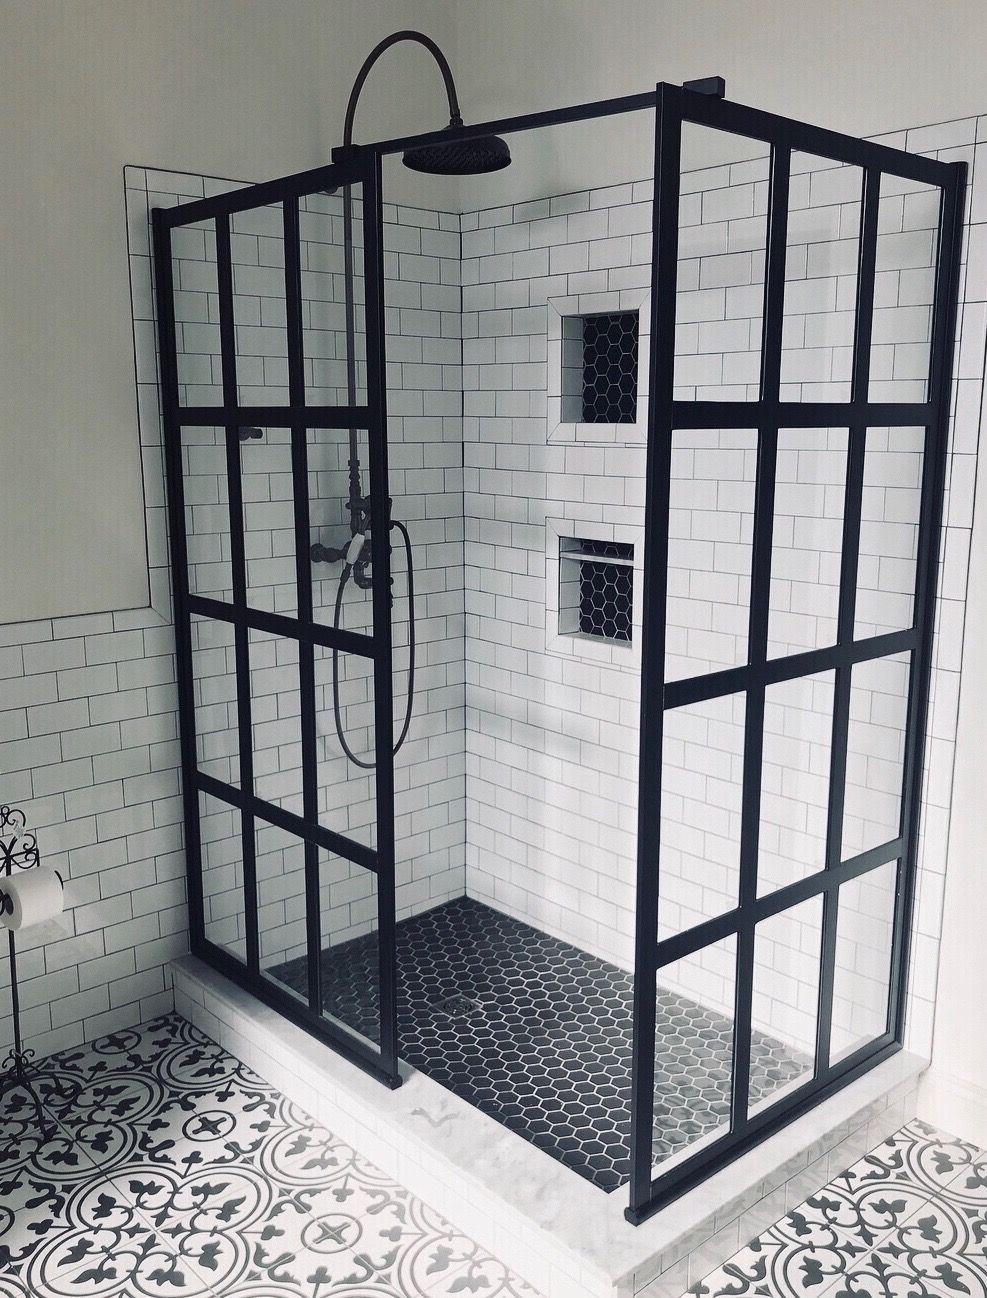 Photo of B&W Industrial Farmhouse Bathroom w/ 2X Black Factory Window Style Gridscape Shower Screens